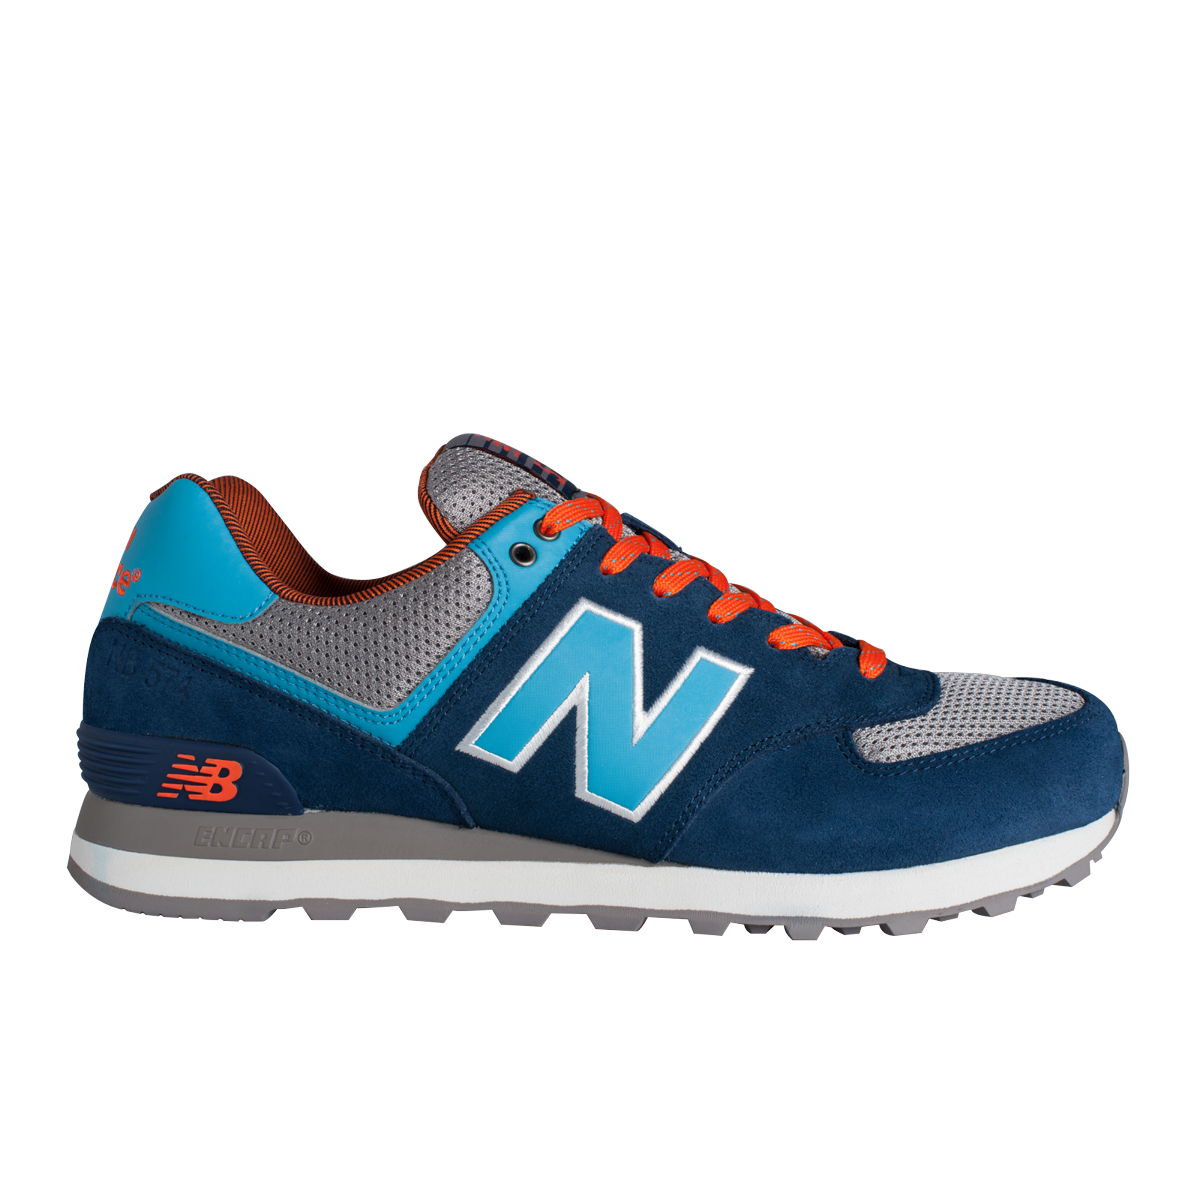 New Balance 574, New Balance, brooks running, dudessinauxpodiums, du dessin aux podiums, shoe store, sports shoes, cross training shoes, new balance stores